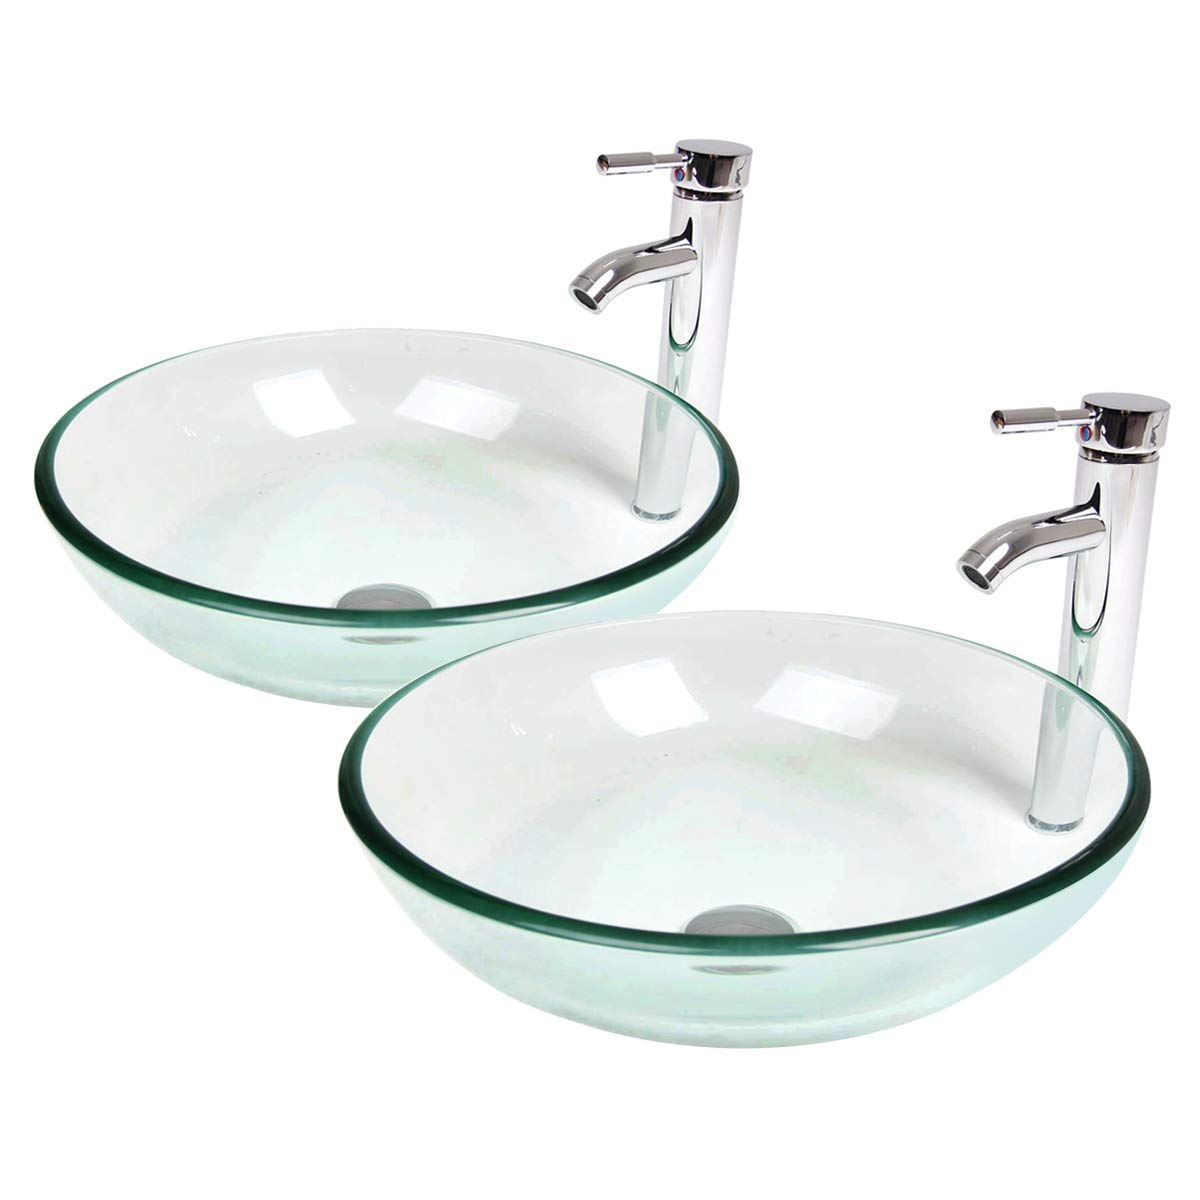 PULUOMIS Glass Bathroom Clear Vessel Sink with Faucet,Set of 2